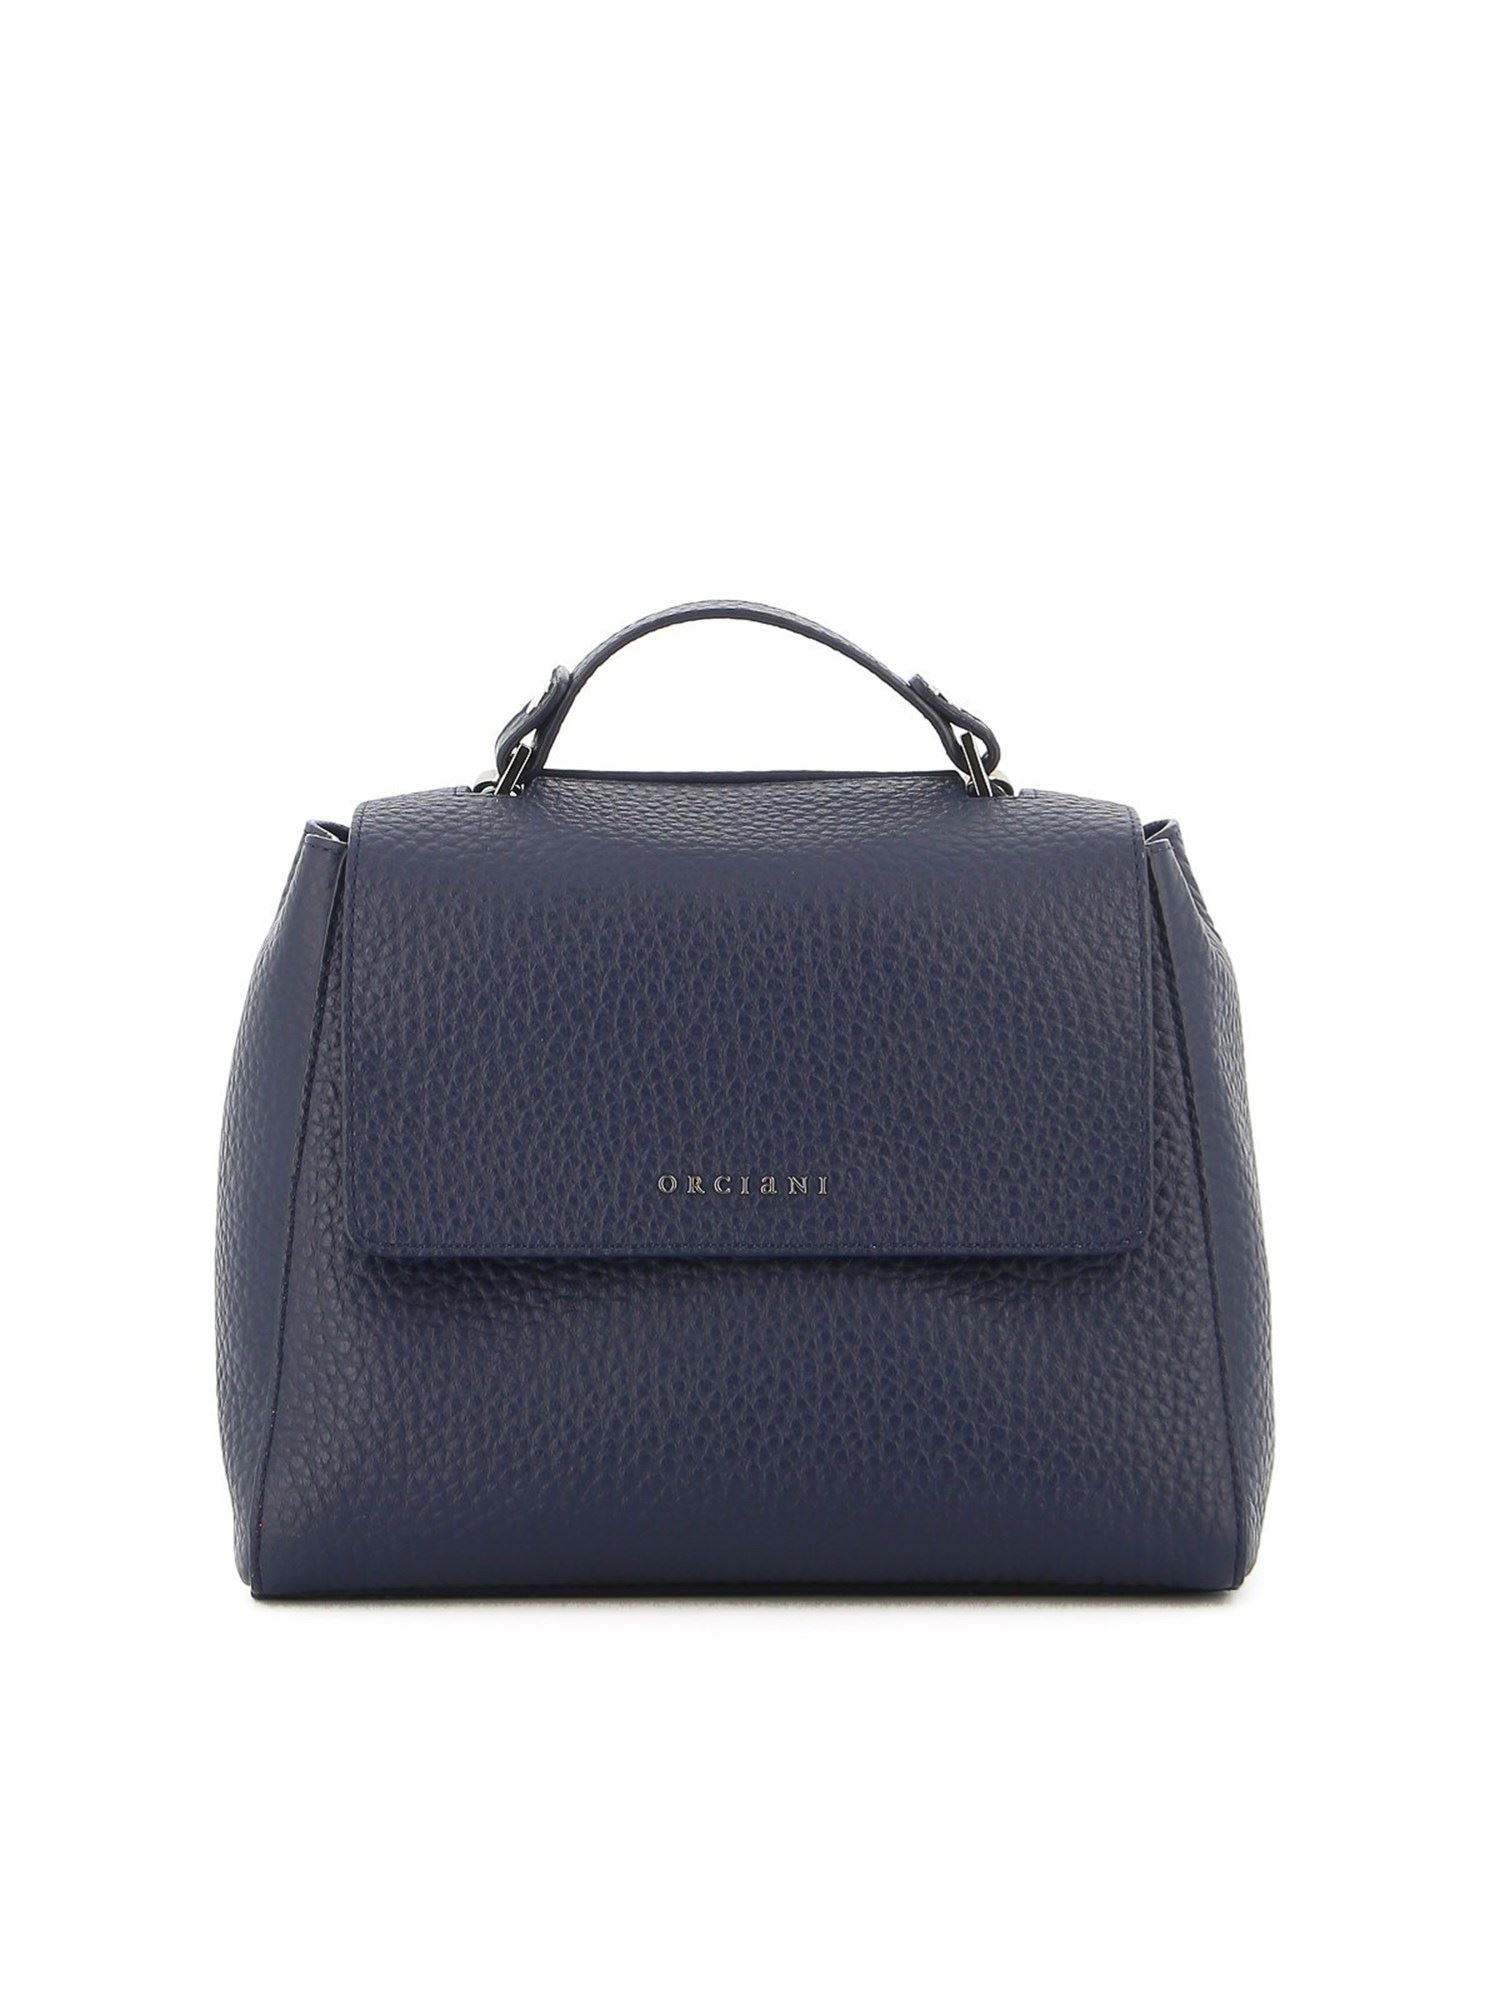 Orciani SVEVA GRAINY LEATHER SMALL BAG IN BLUE